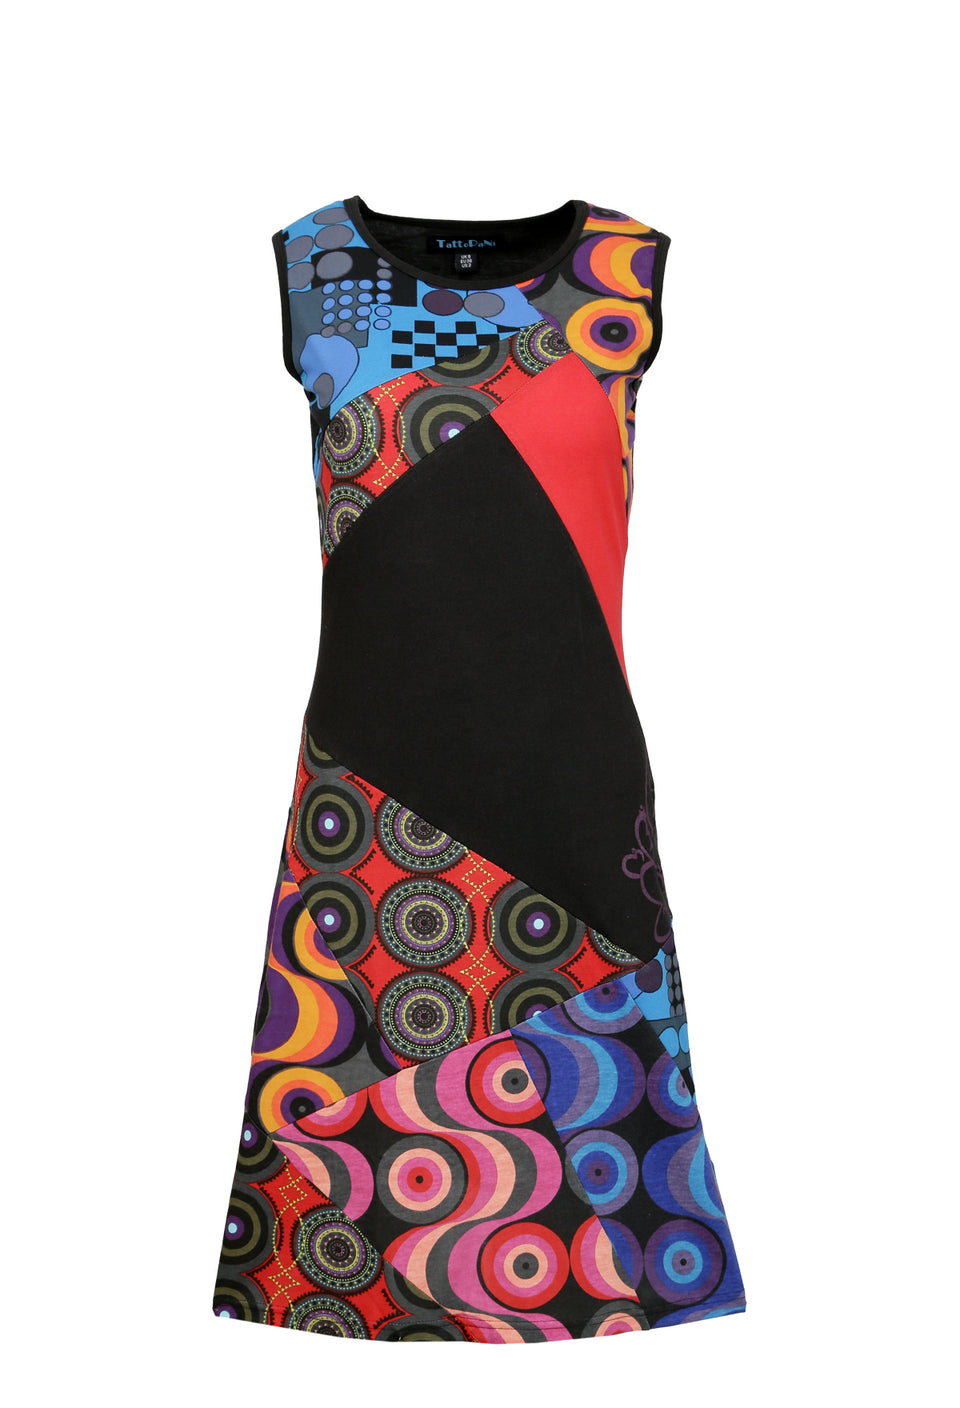 Ladies Summer Sleeveless Dress with Colorful Circle Print and Patch Design - Craze Trade Limited